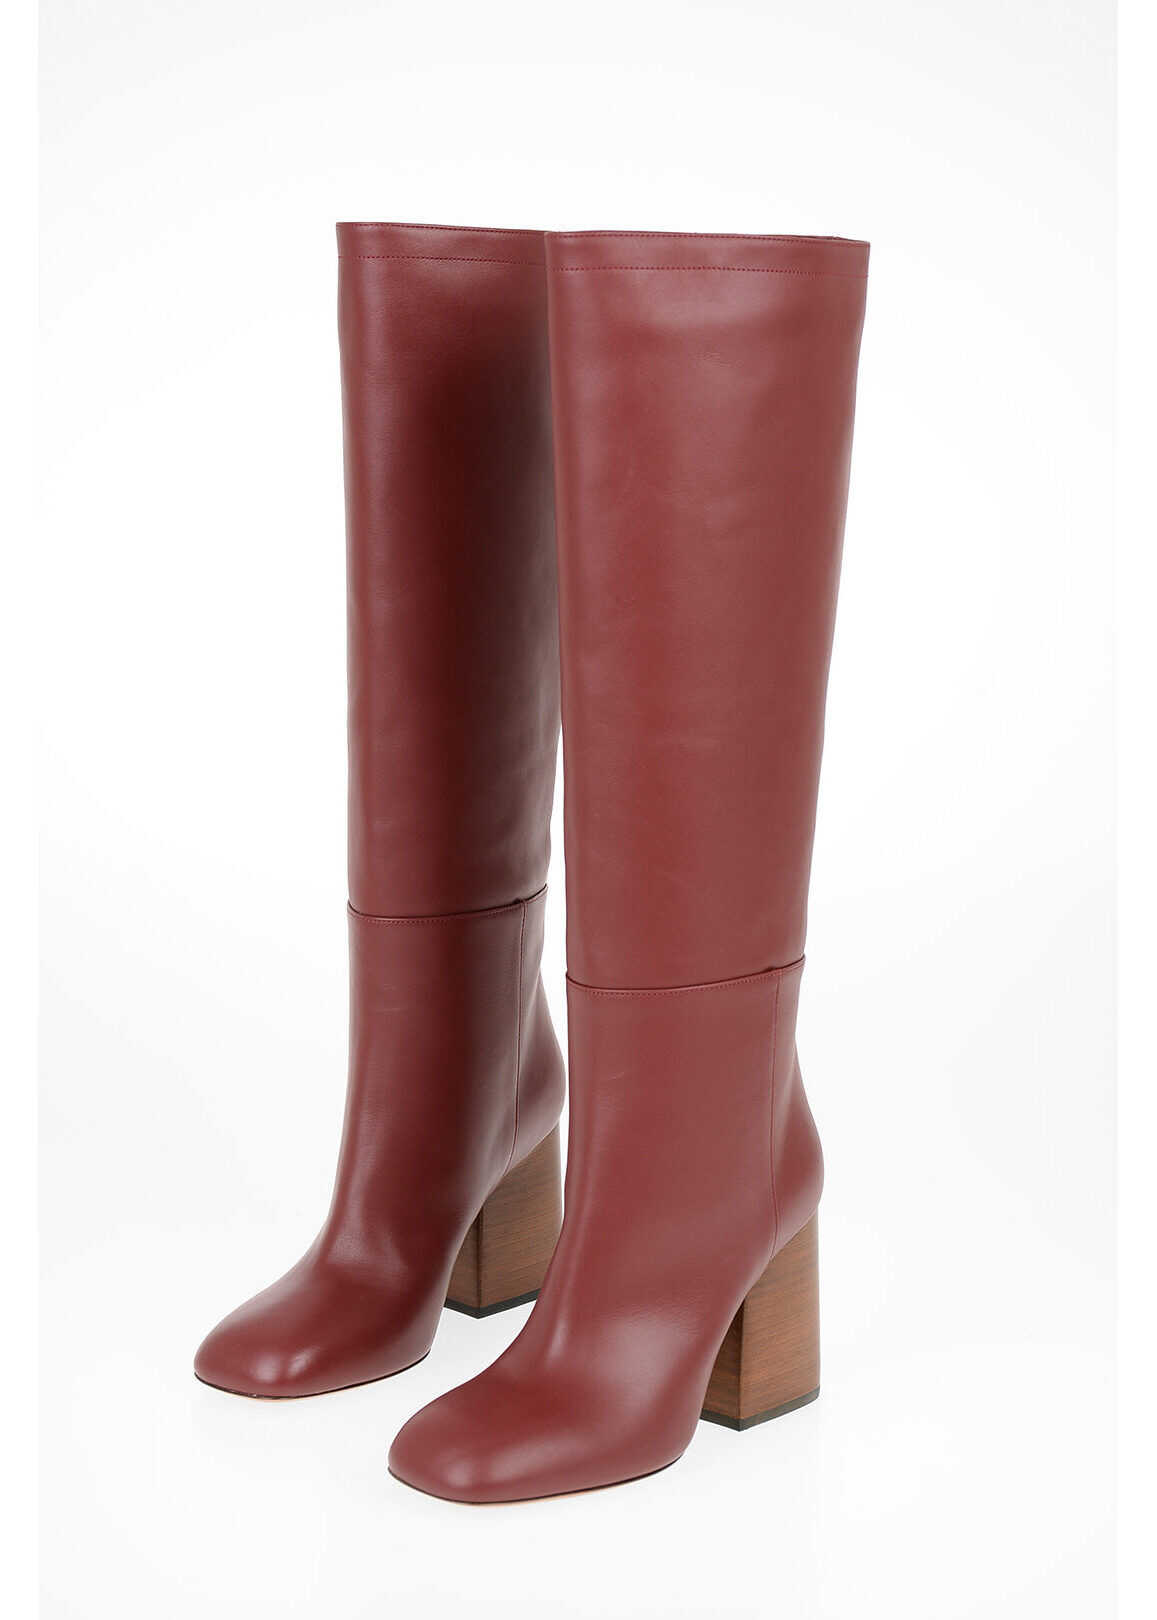 Marni 9cm leather Knee boots RED imagine b-mall.ro